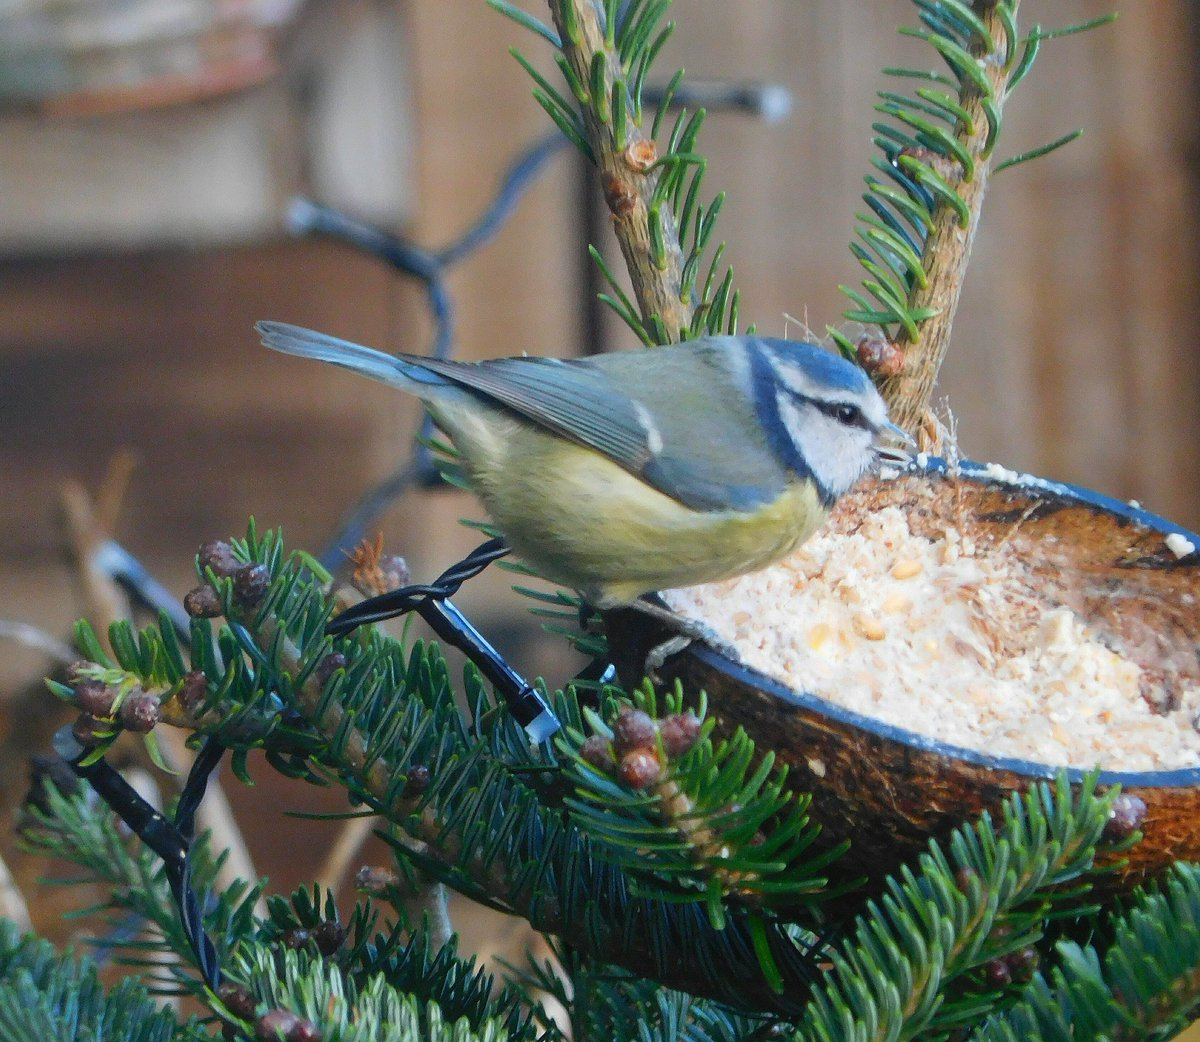 My potted Christmas from @UrbanPlantLife has now been repotted and placed in the garden. Blue Tit in for a feed. @rawbirds @Irishwildlife #Dublin  <br>http://pic.twitter.com/U0HTxThPfO